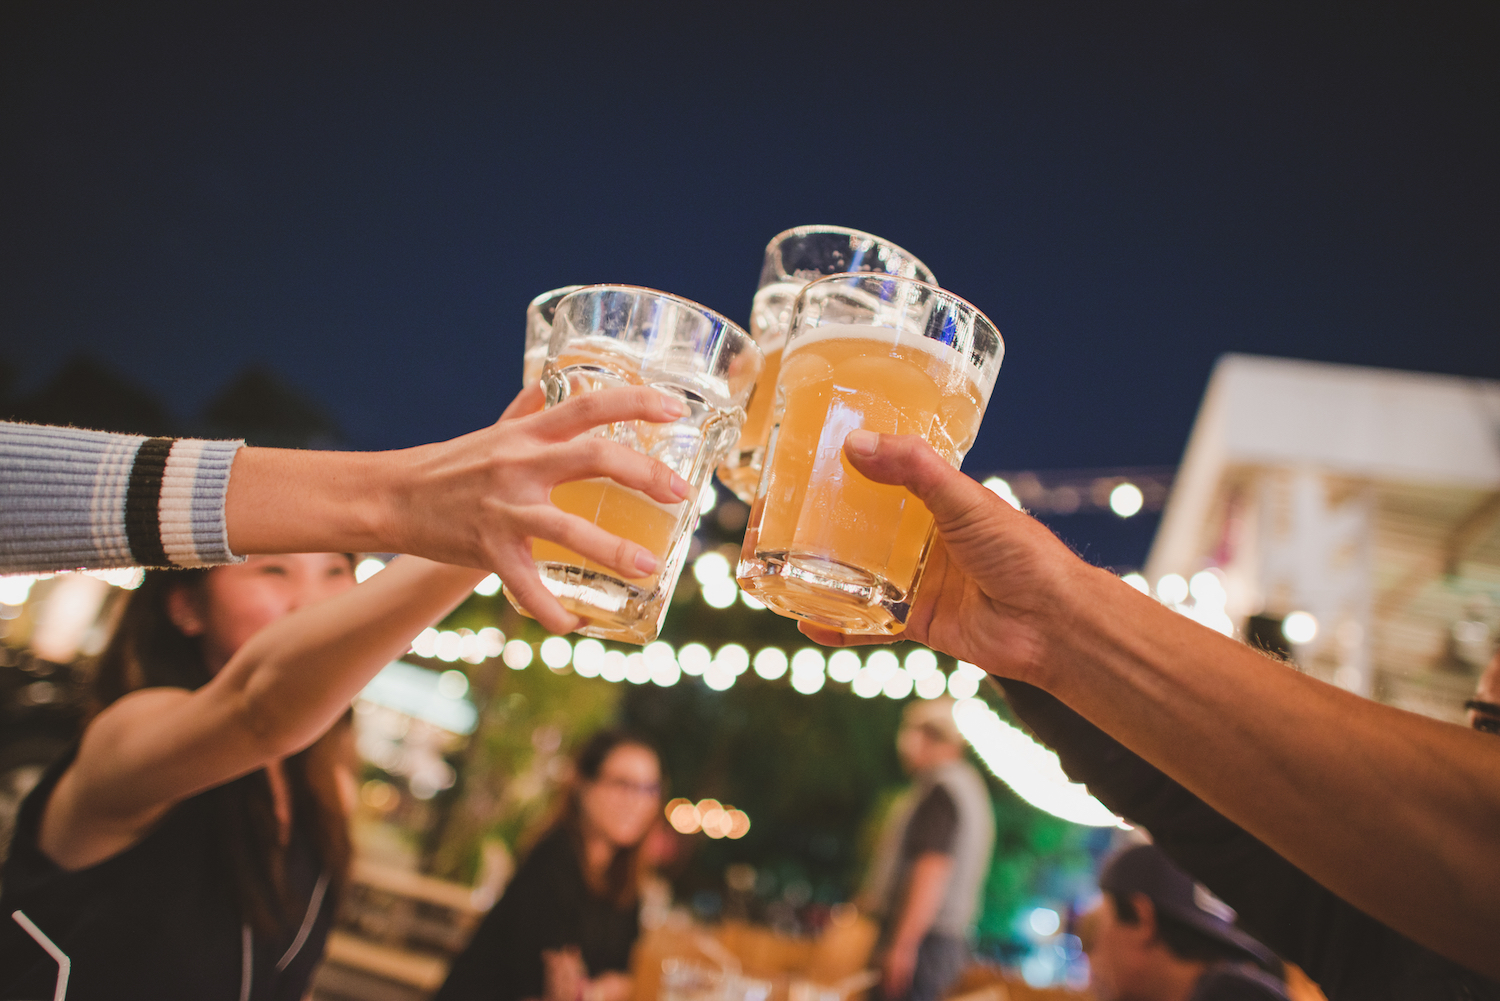 The Great American Beer Festival is a great place to gather around good drink.